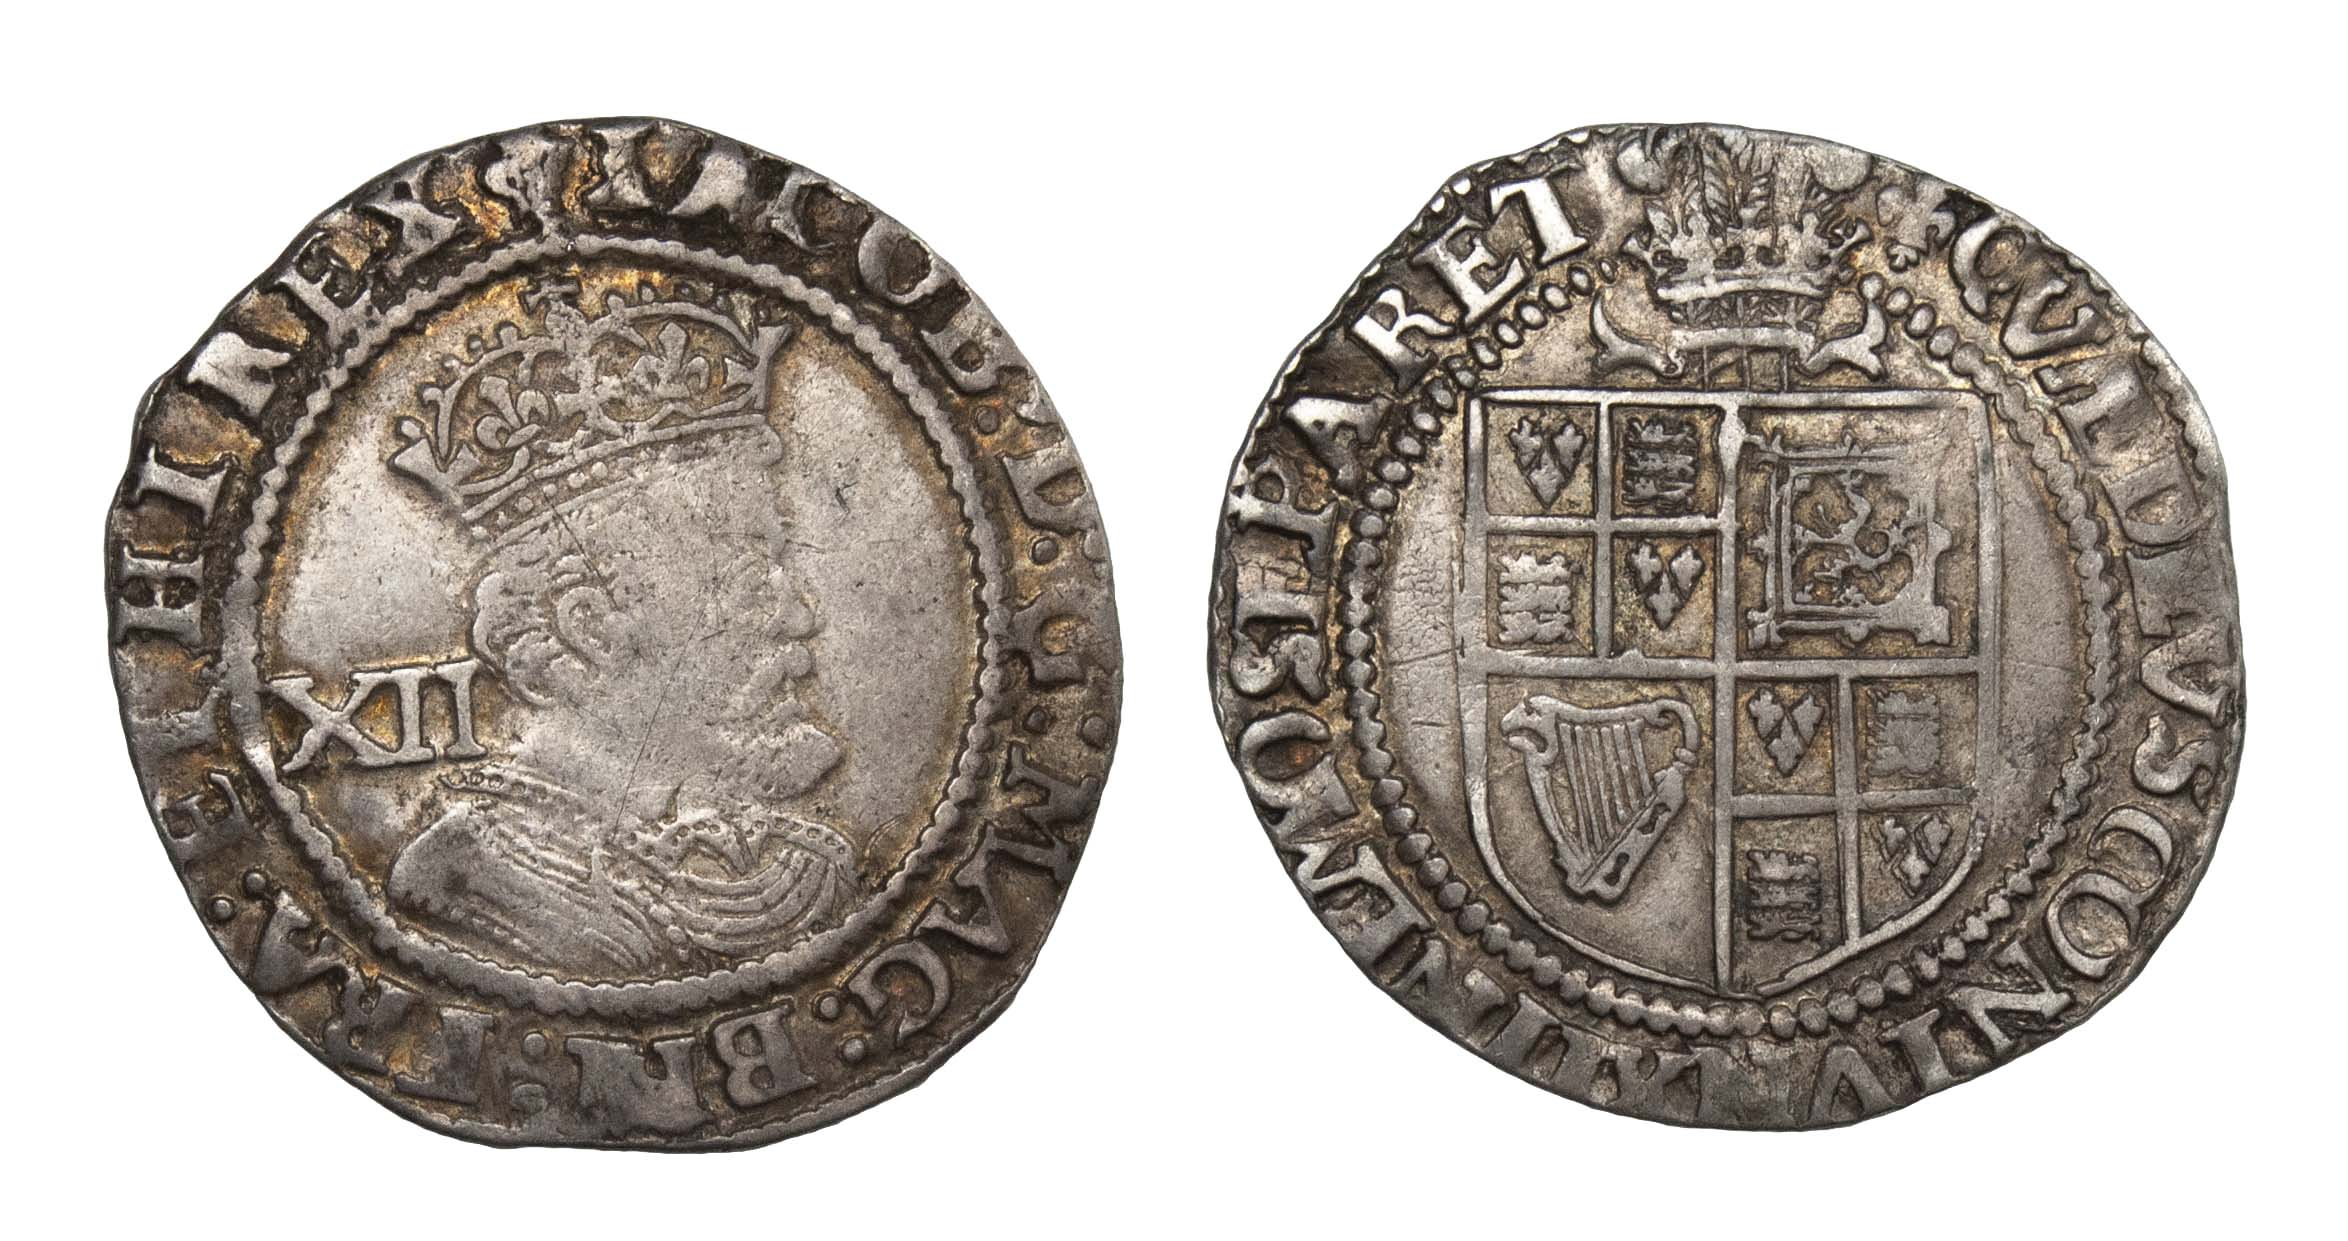 James I (1603-25) Shilling, Third Coinage, Plume above shield